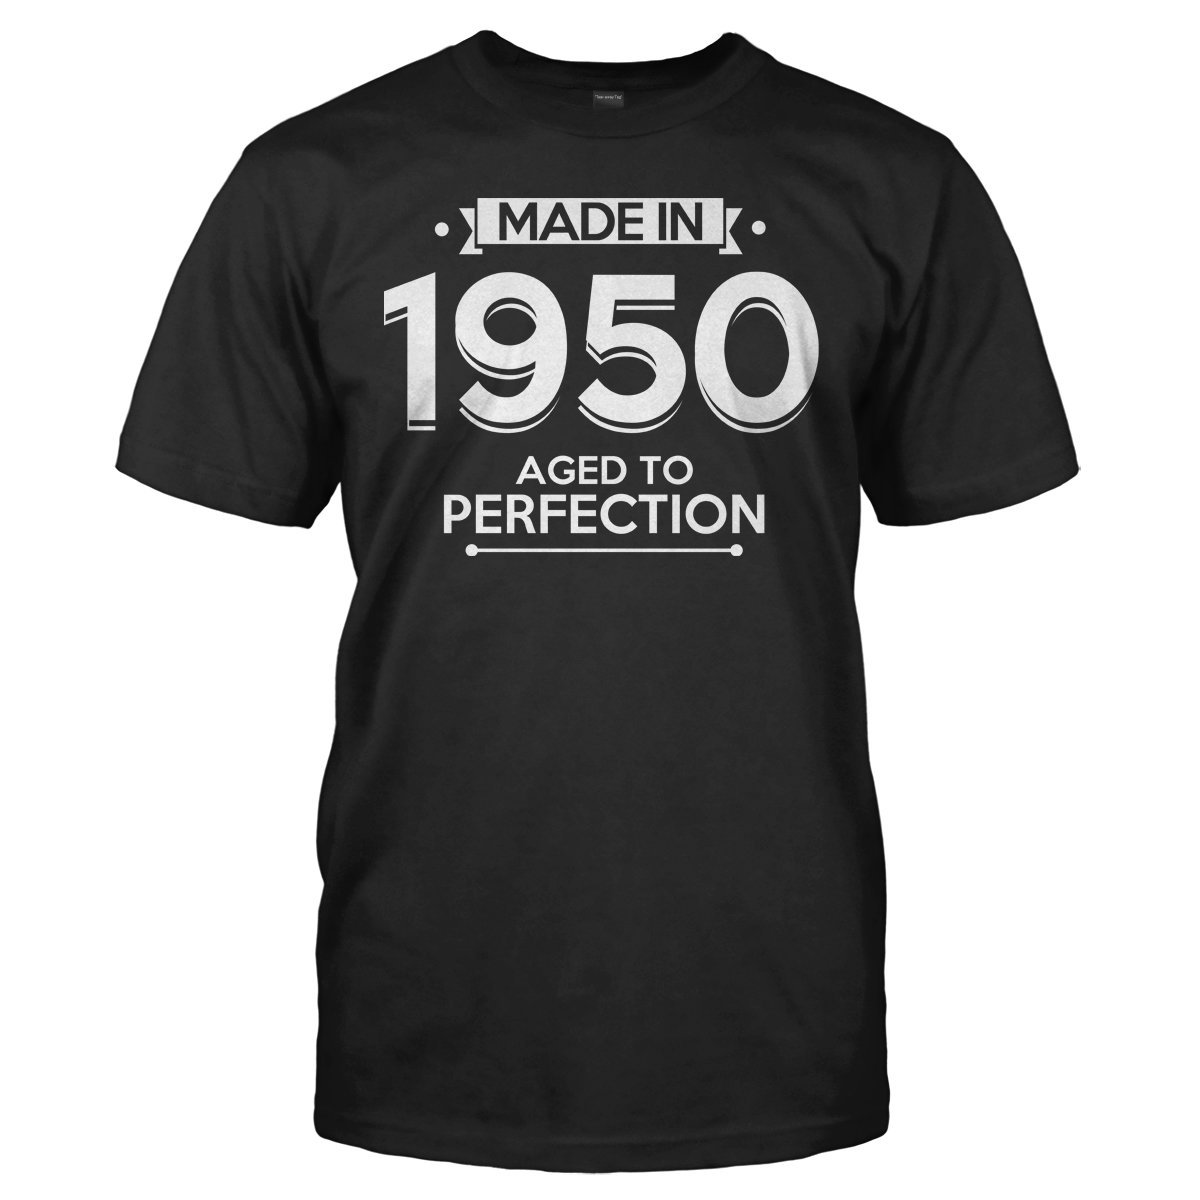 Made in 1950. Aged to Perfection - T Shirt